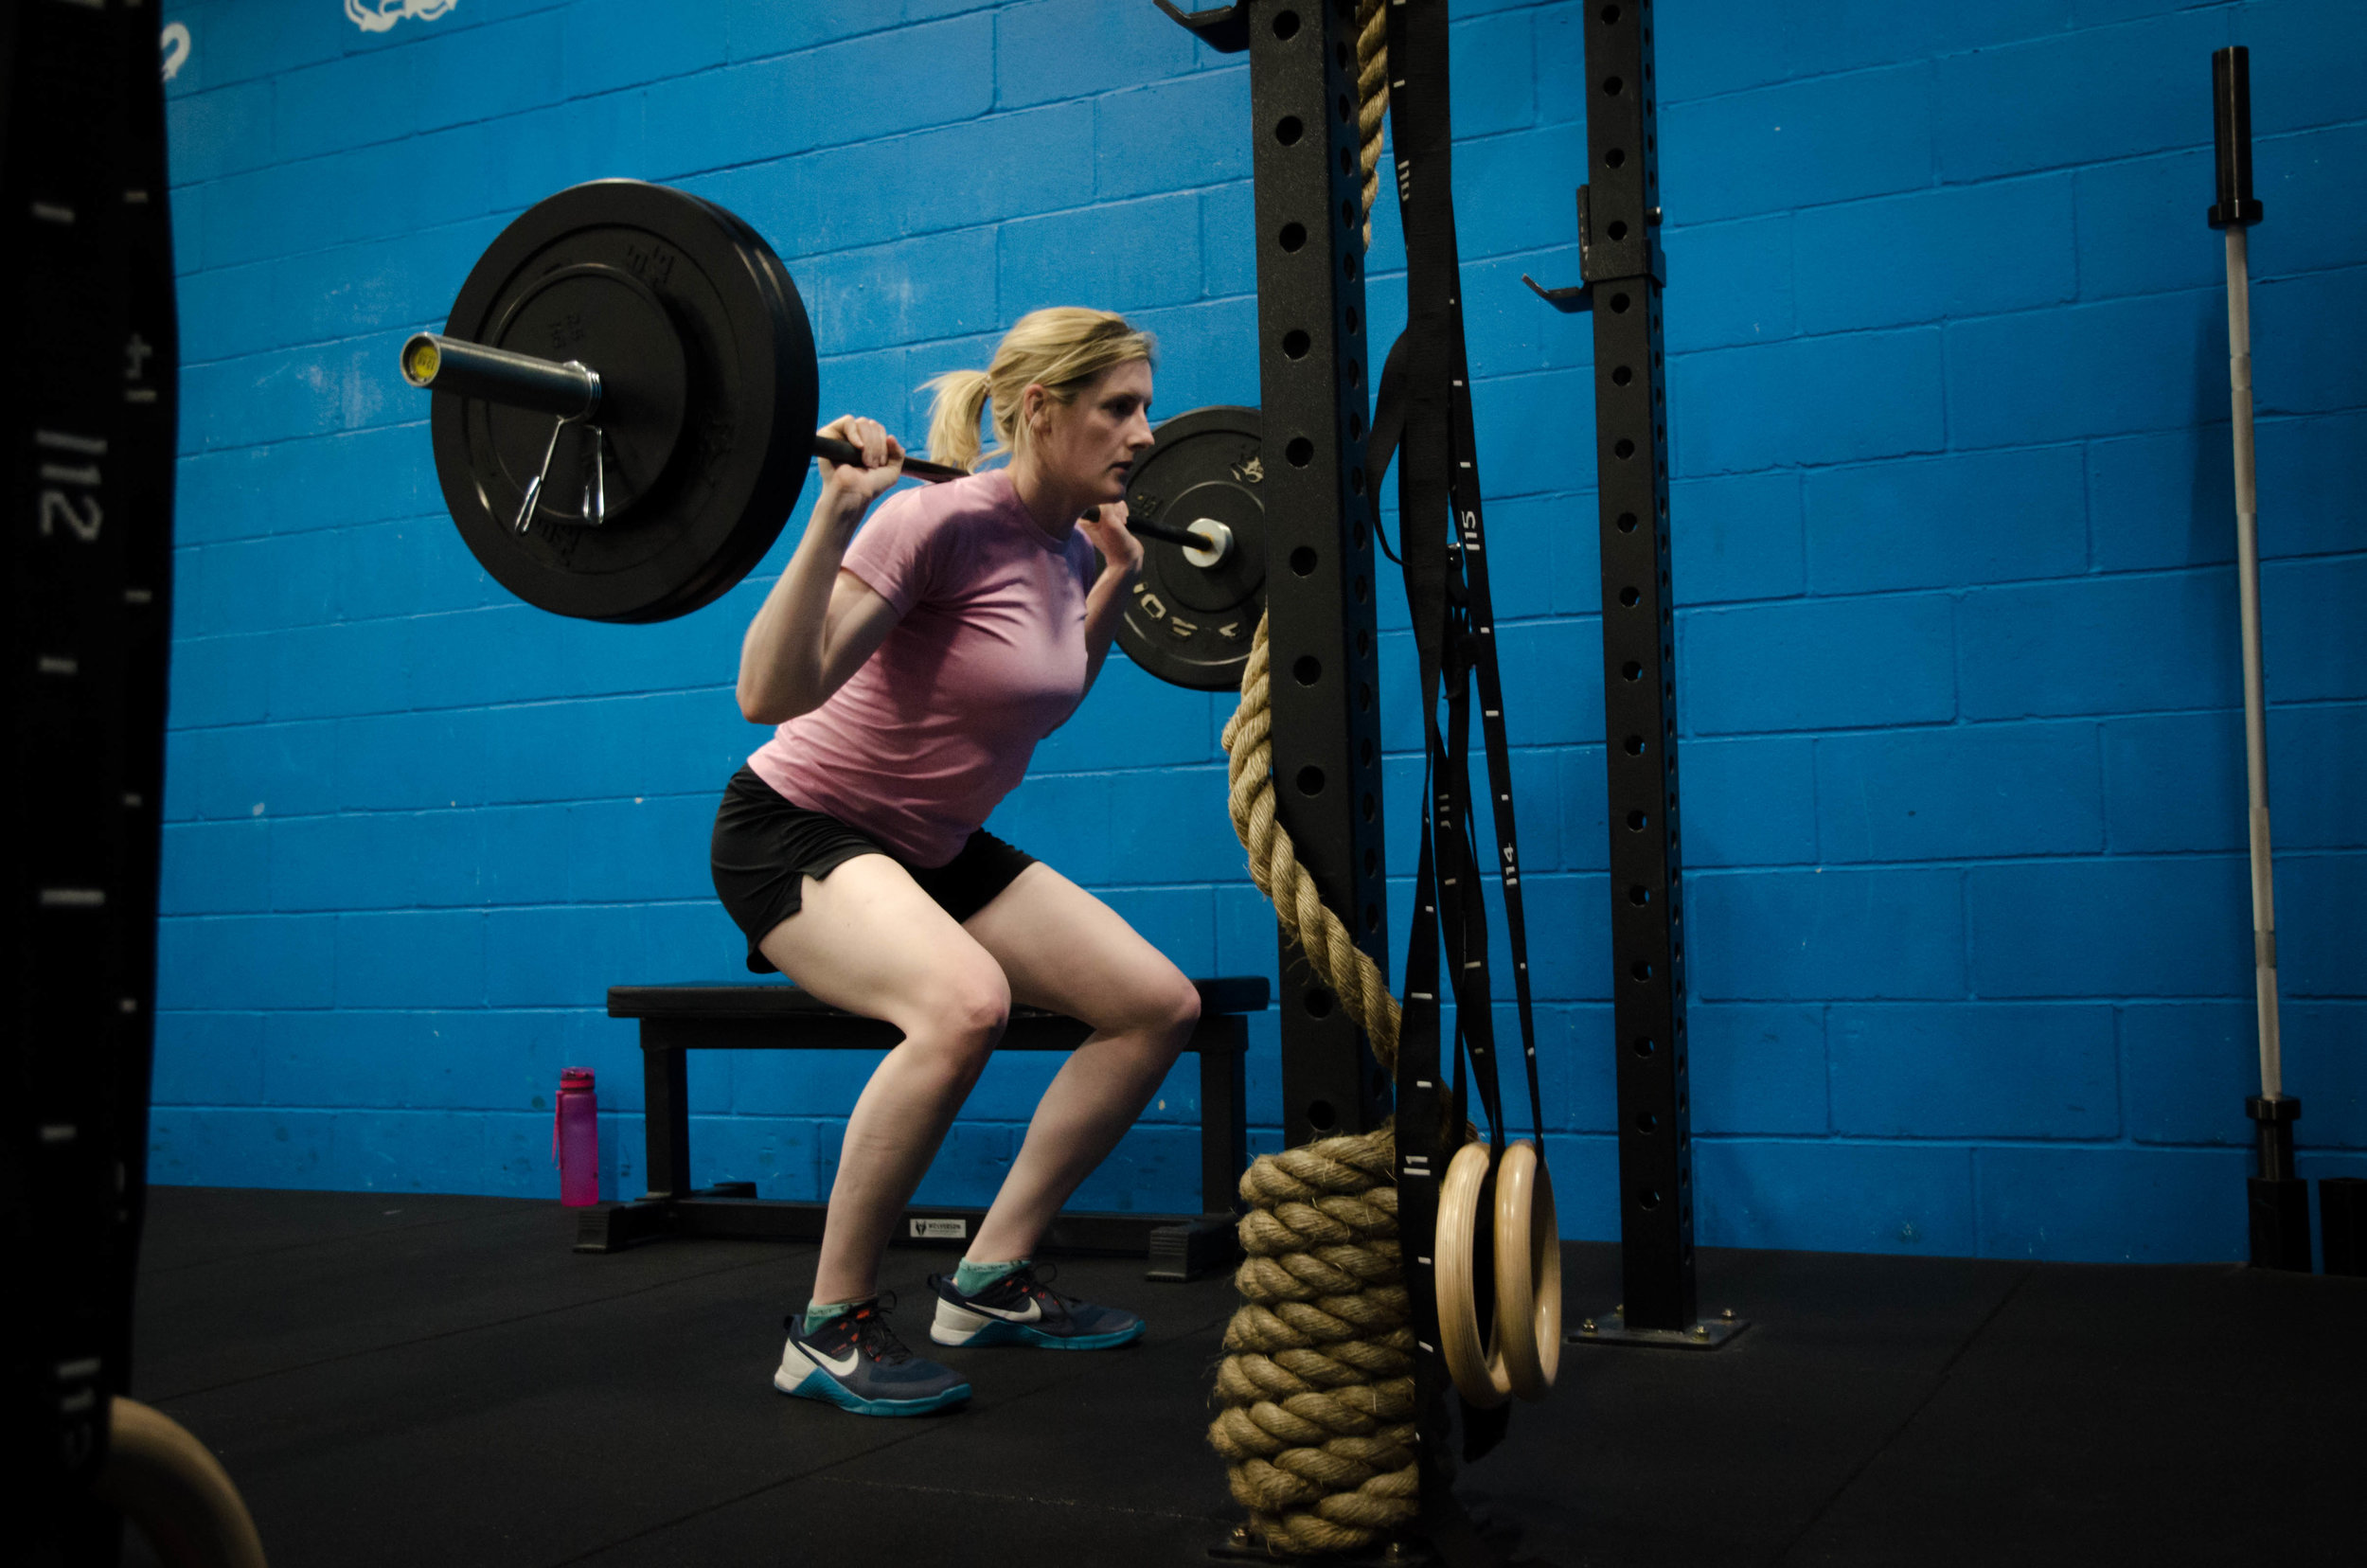 backsquat-crossfit.jpg